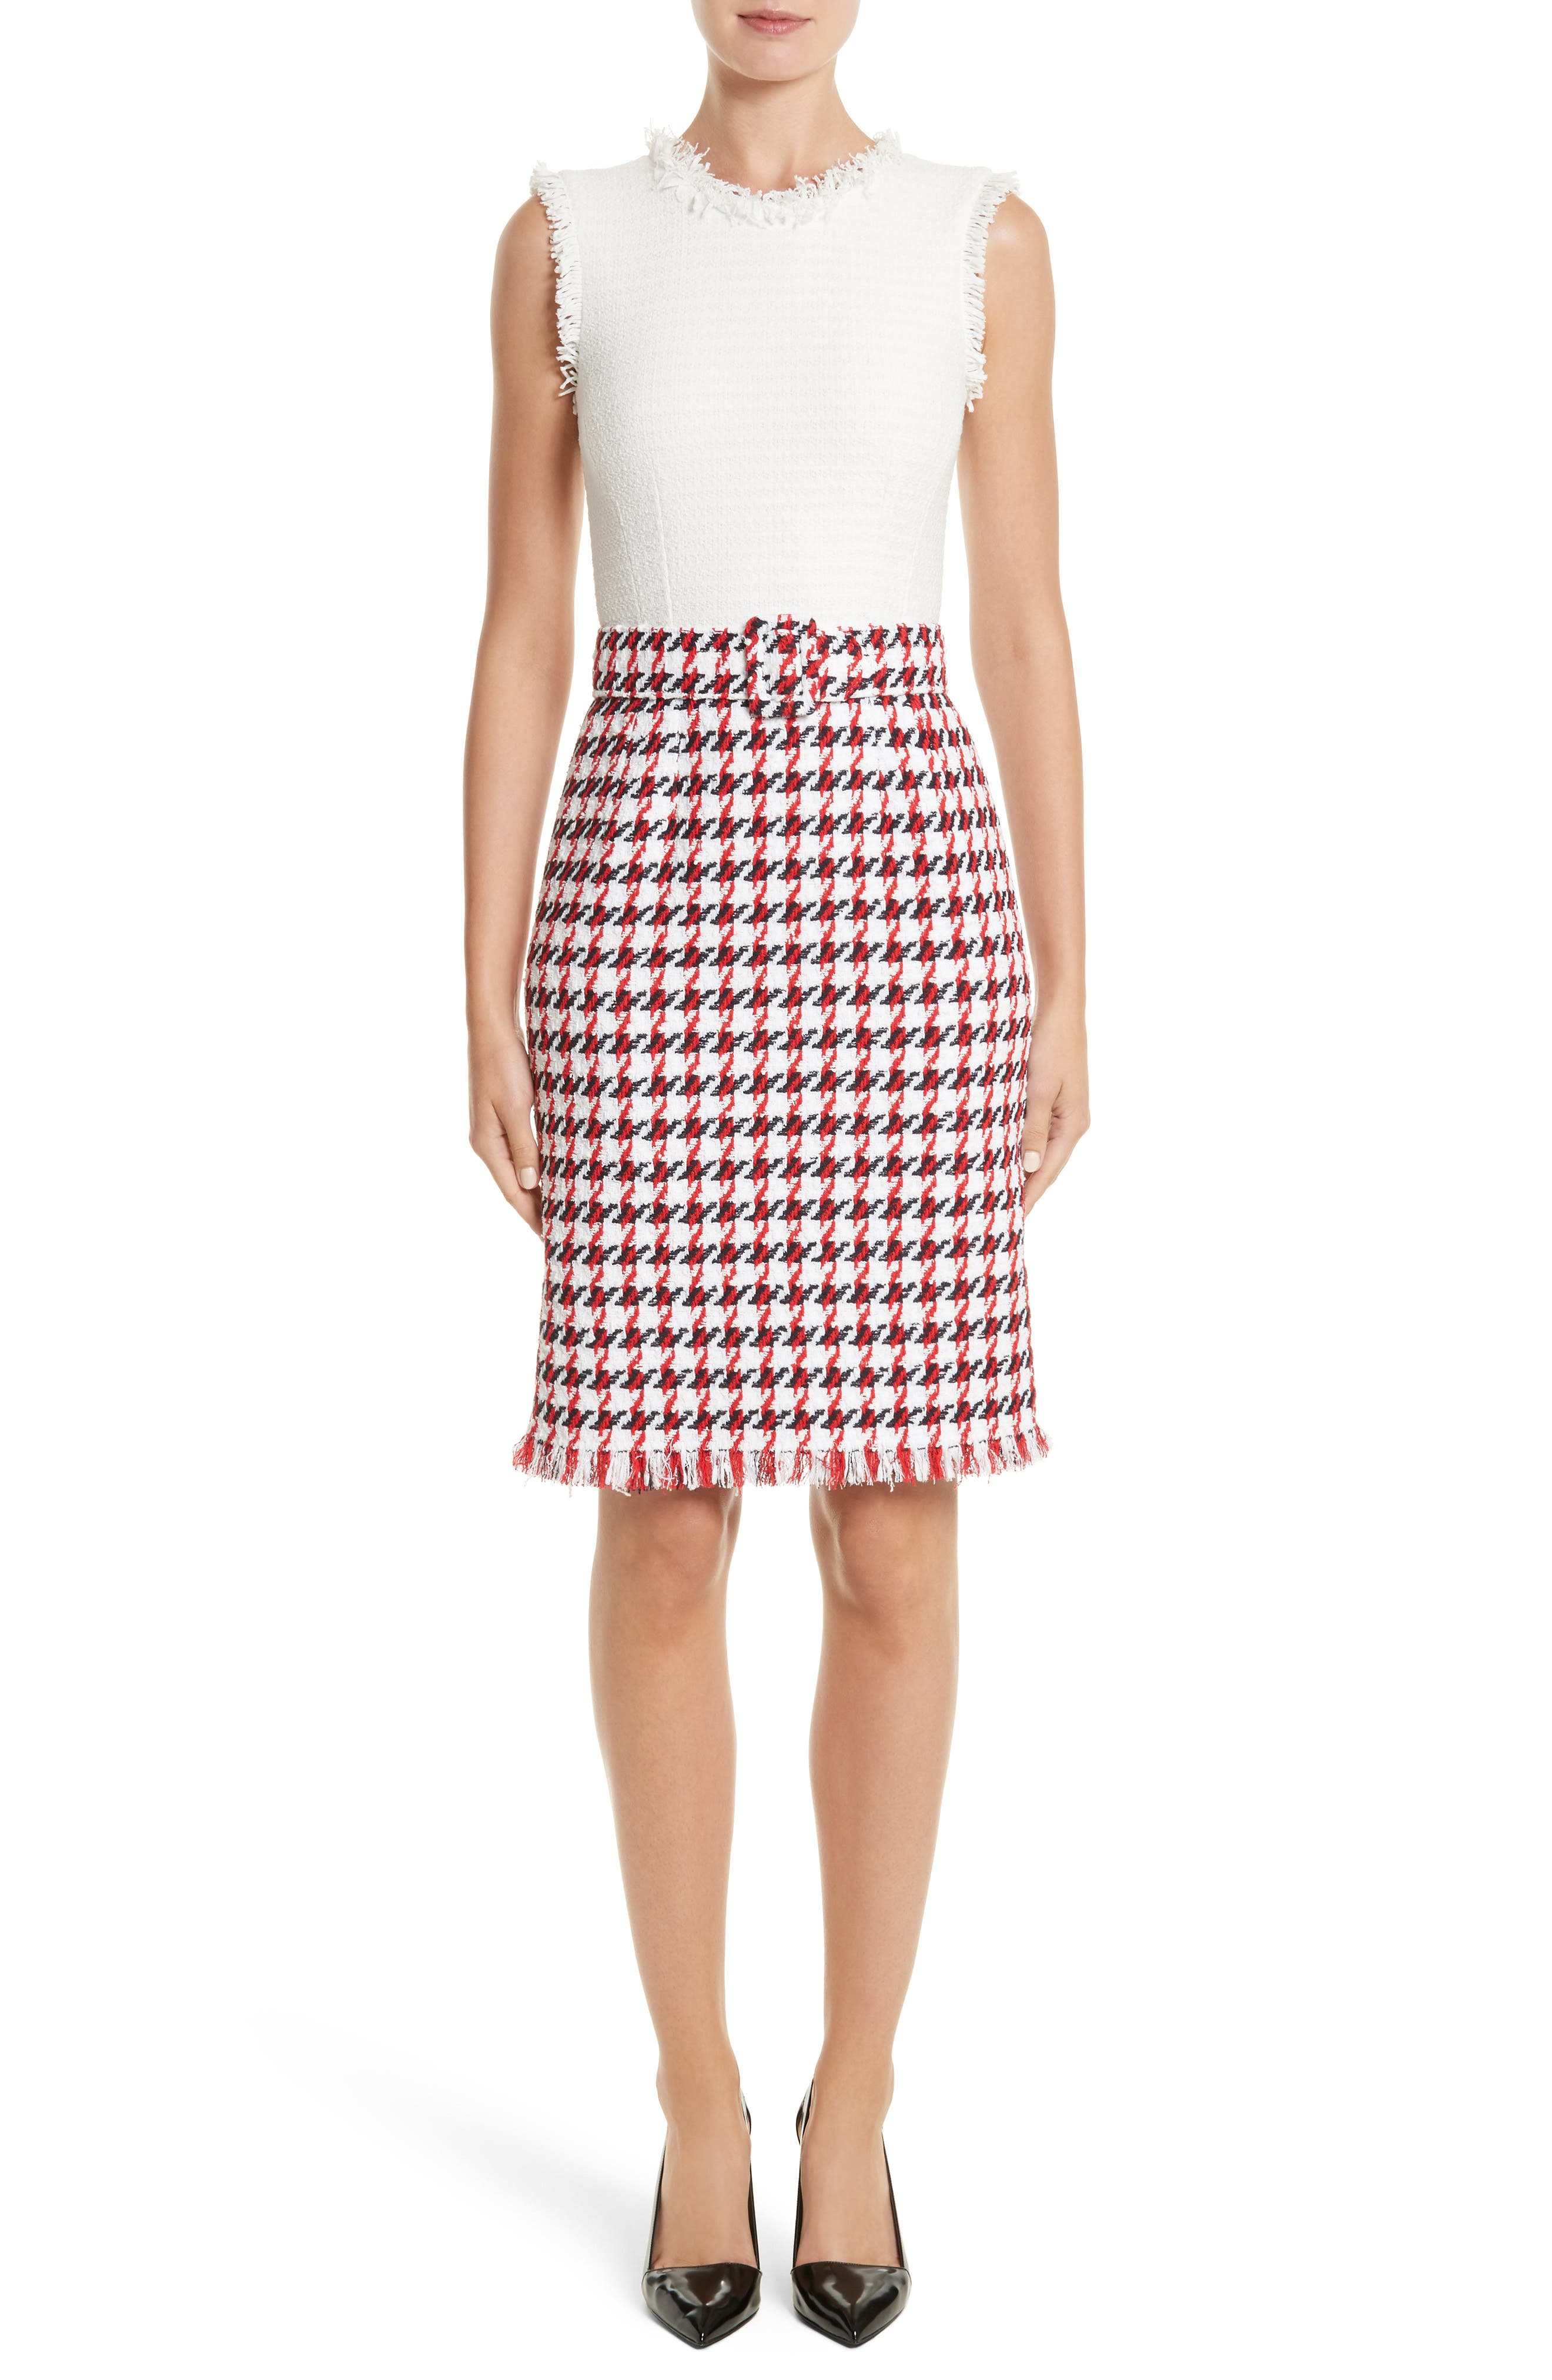 Bicolor Houndstooth Tweed Dress,                         Main,                         color,